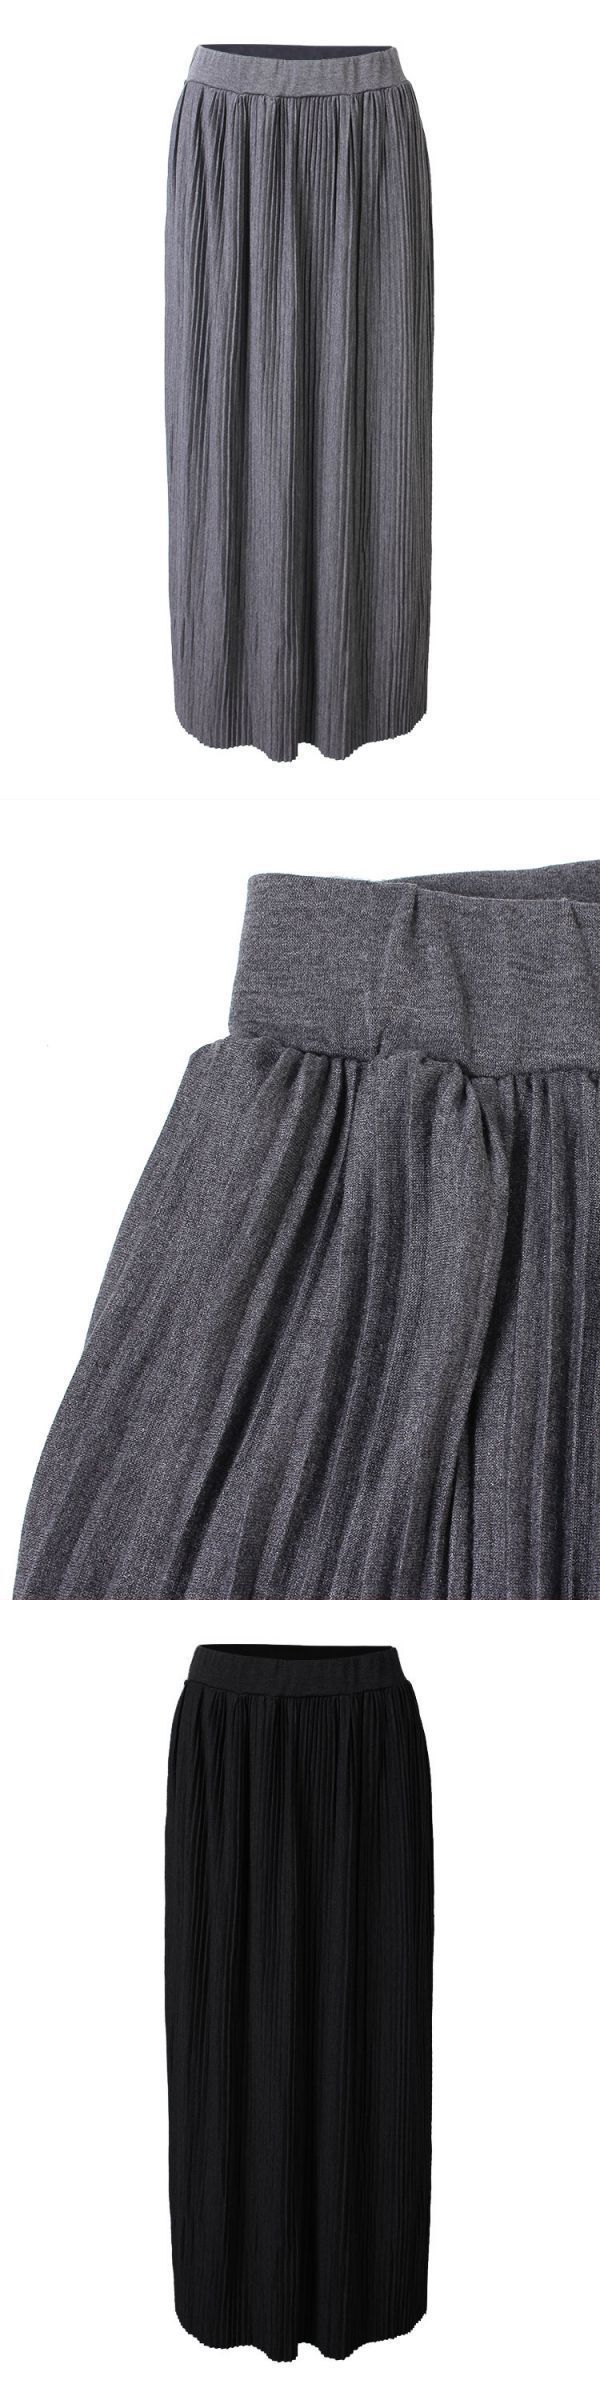 Apt 9 skirts elegant women pure color high waist pleated knitted full maxi skirt #$3 #skirts #50s #skirts #for #sale #skirts #synonym #wagon #r #skirts